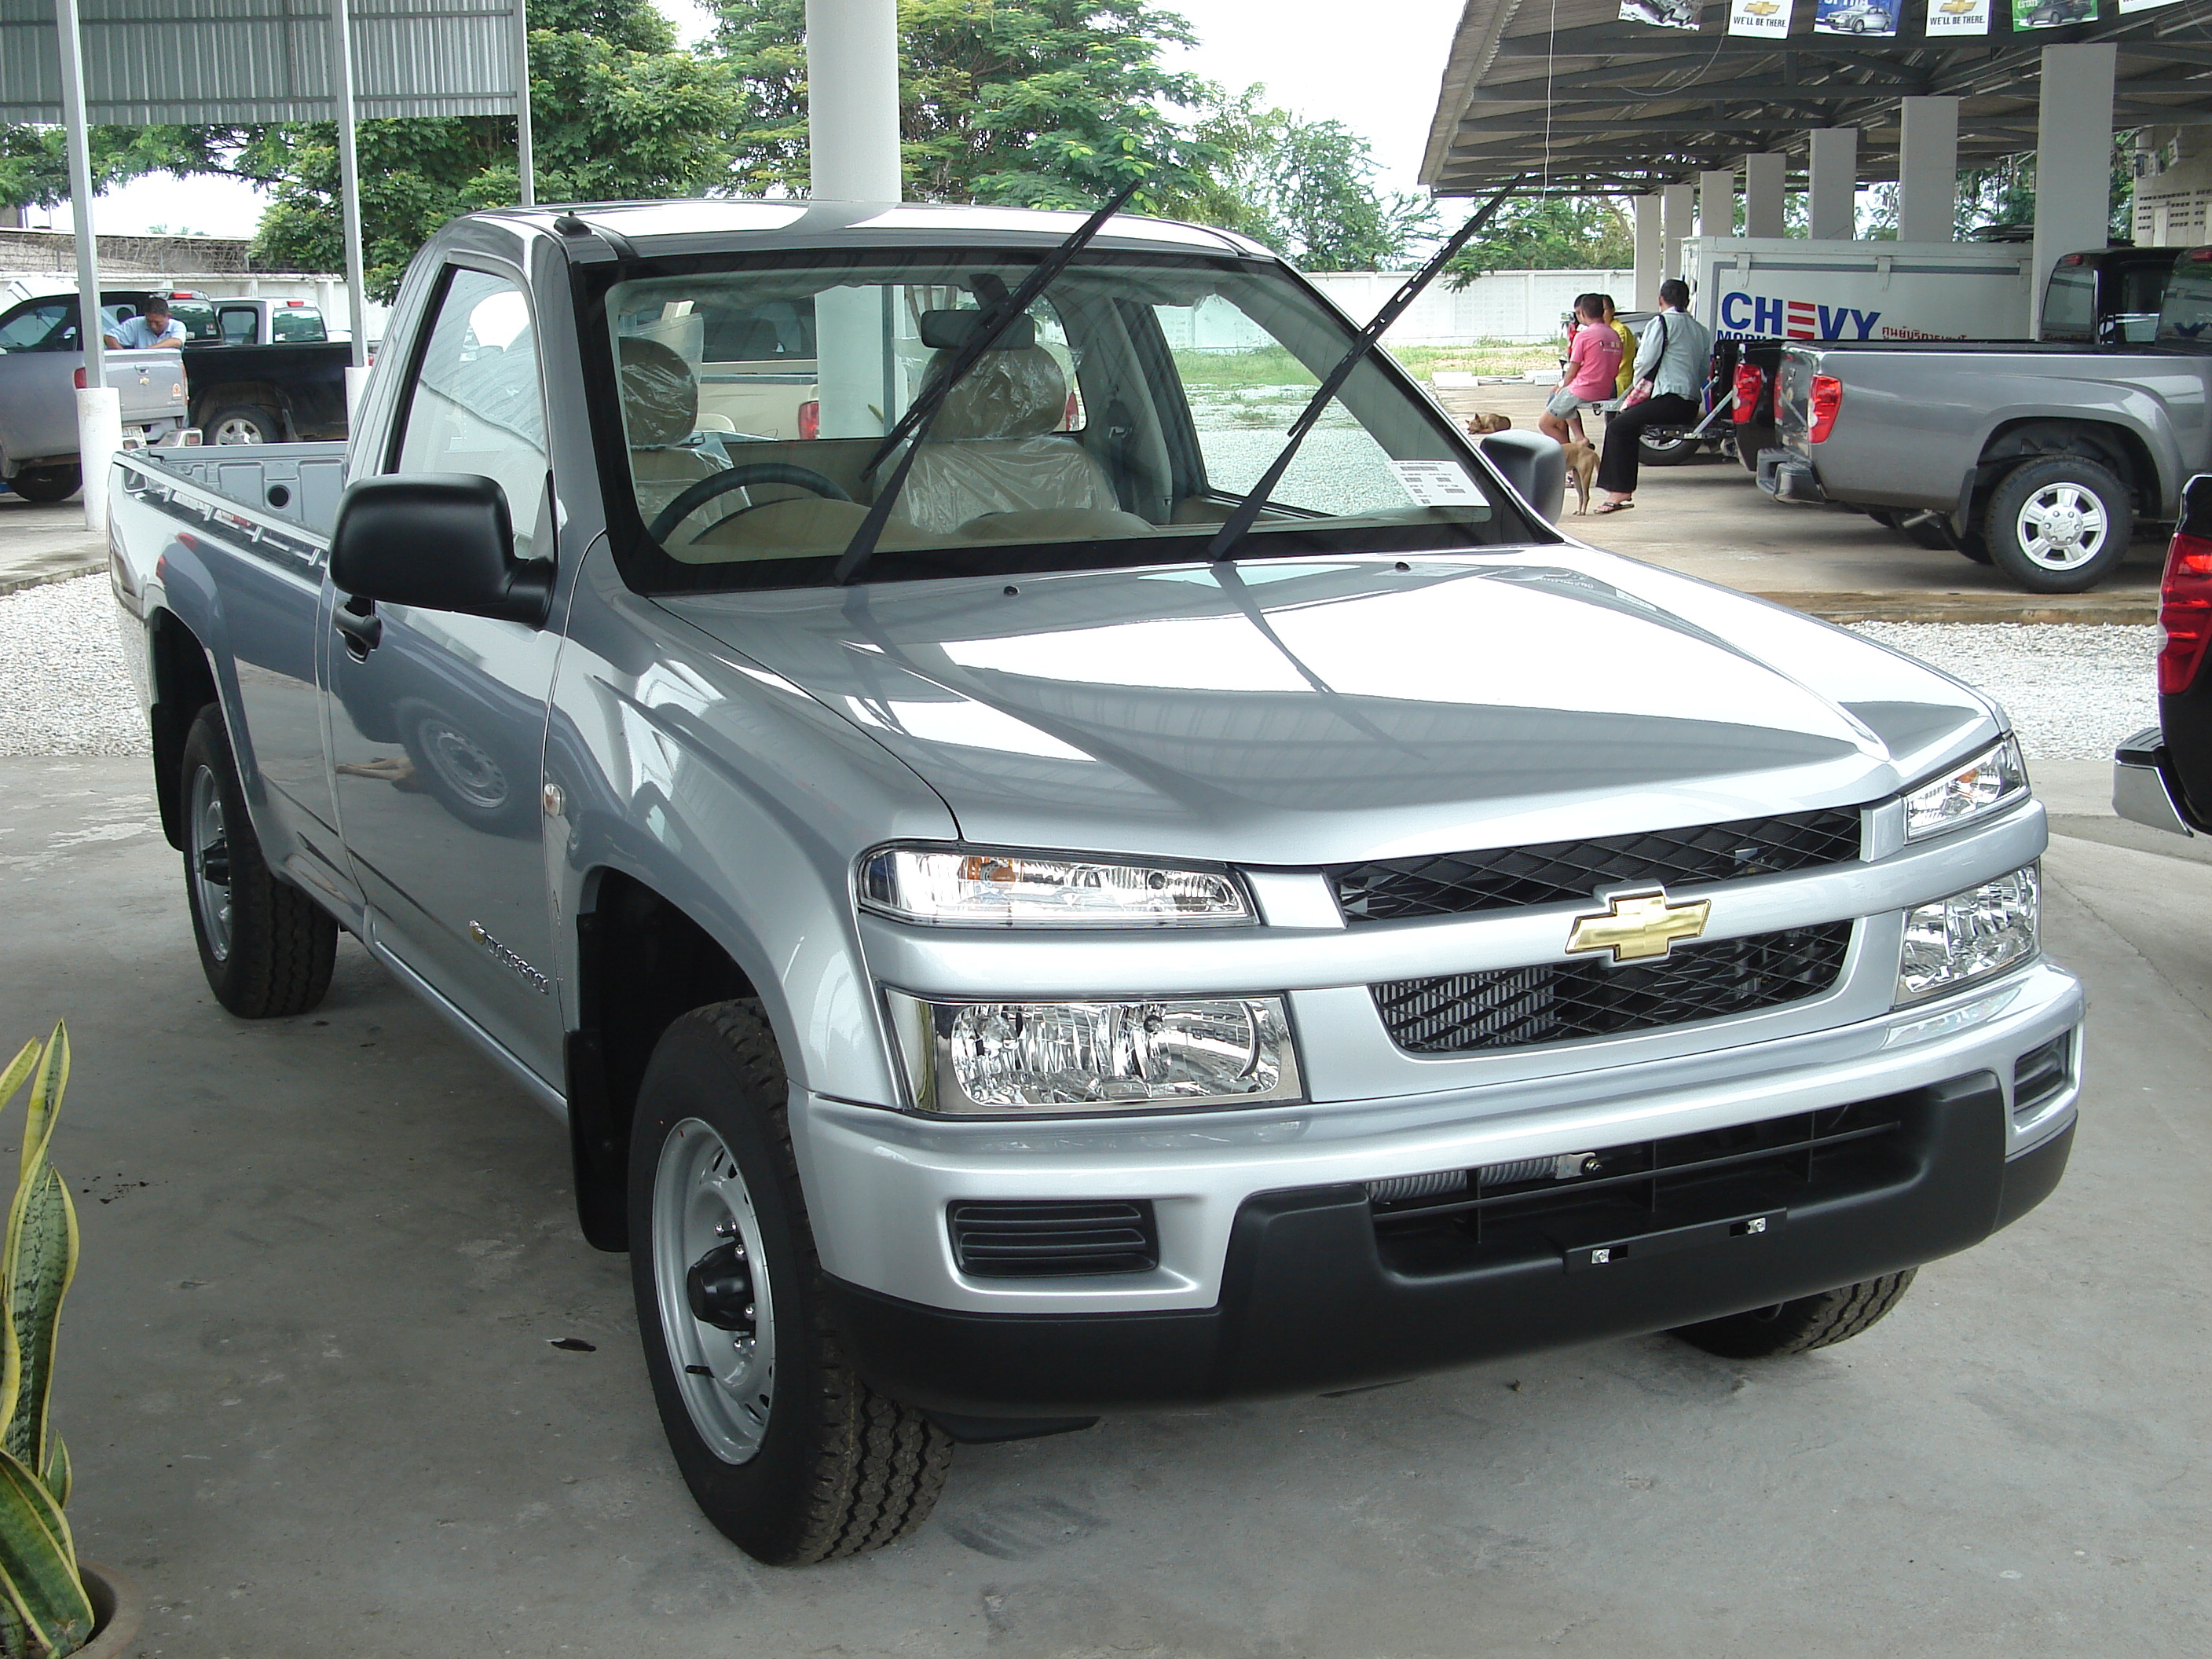 Chevrolet Colorado photo 10